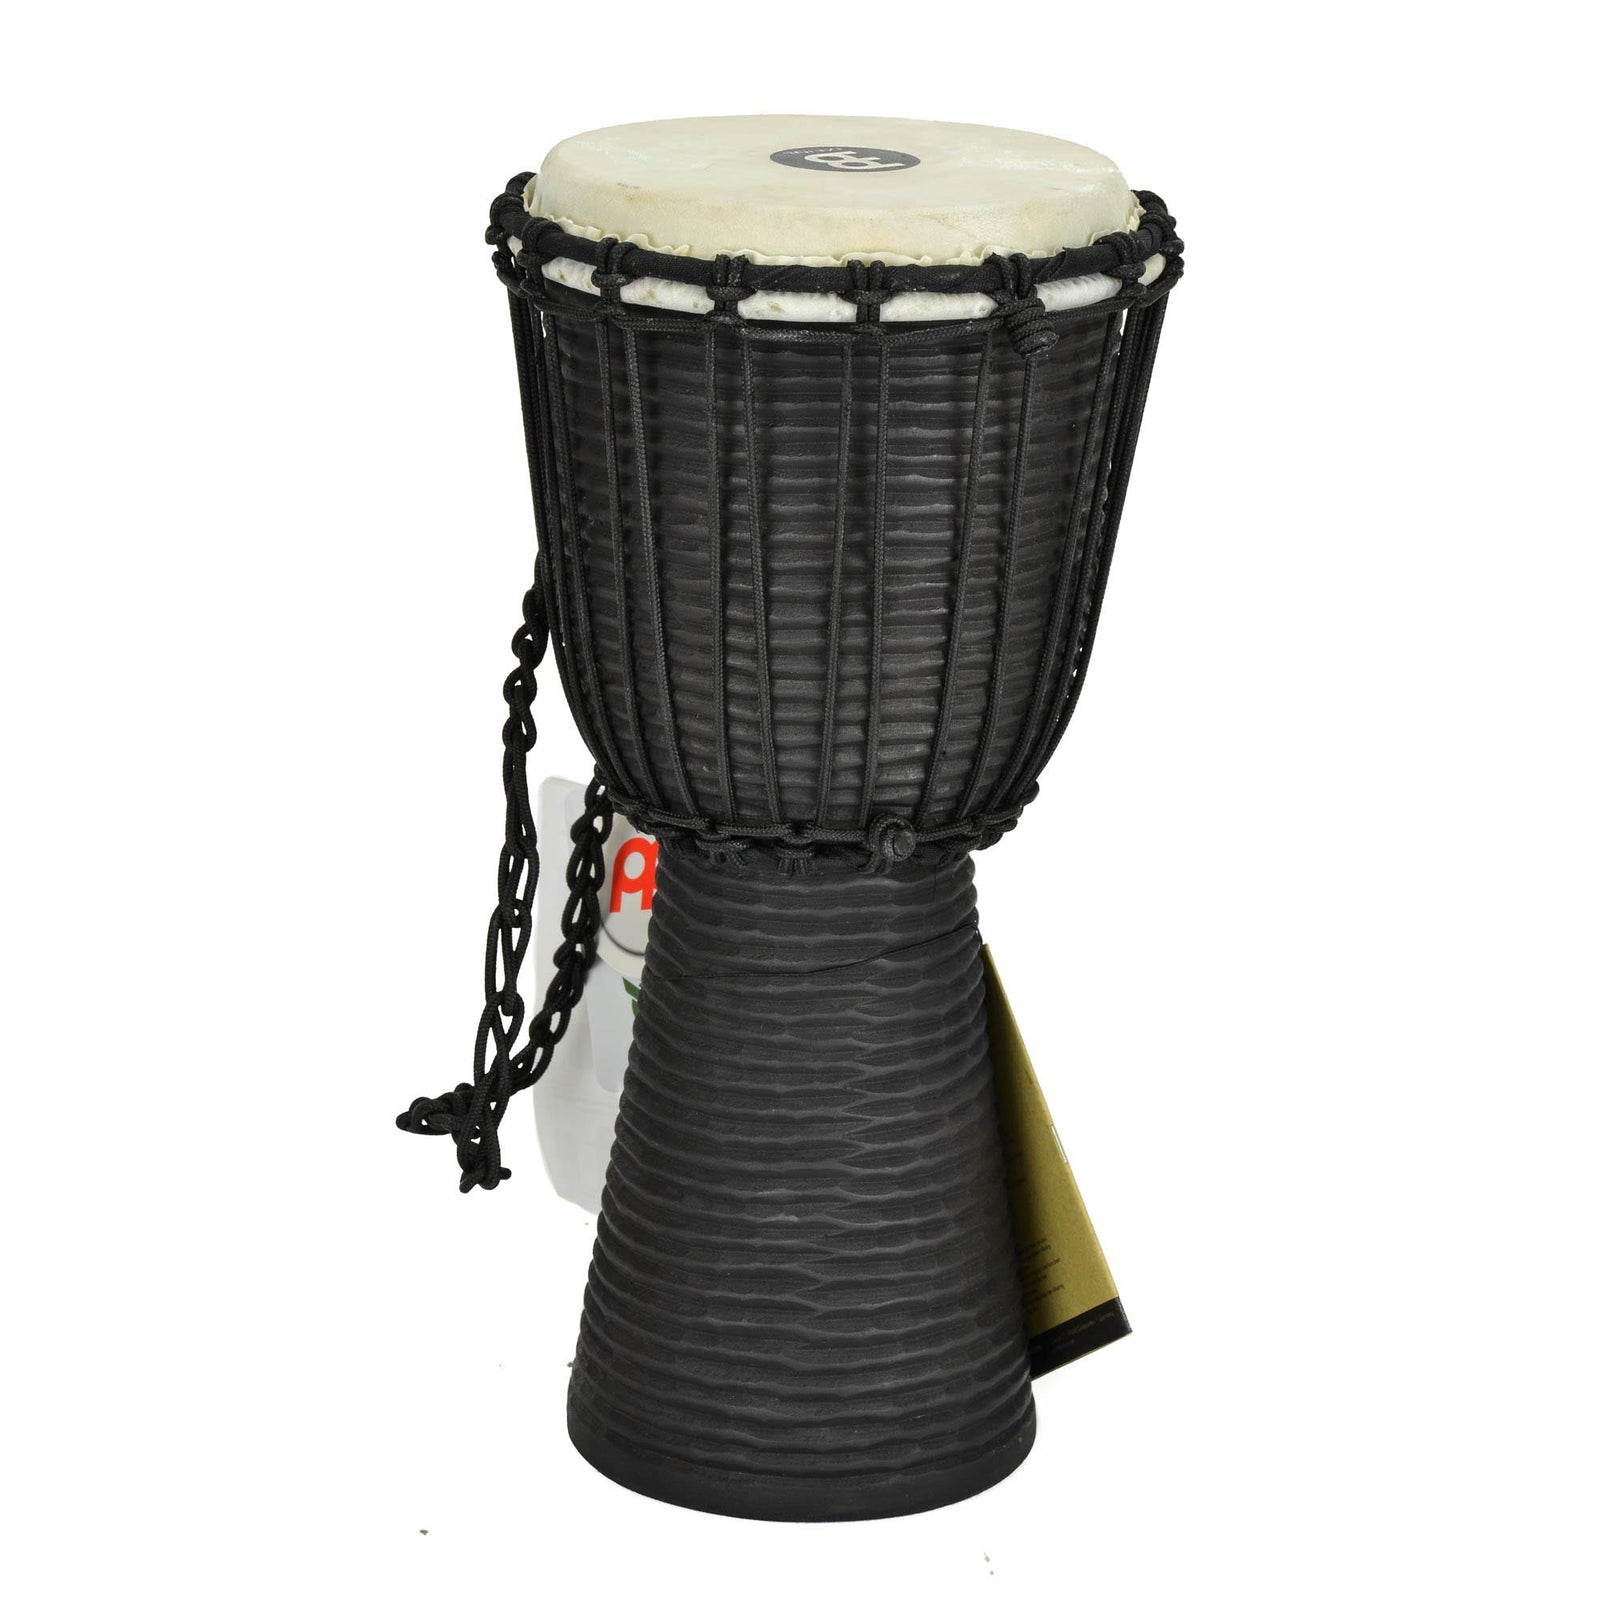 "Meinl 8"" Black River Series Rope-Tuned Wood Djembe"